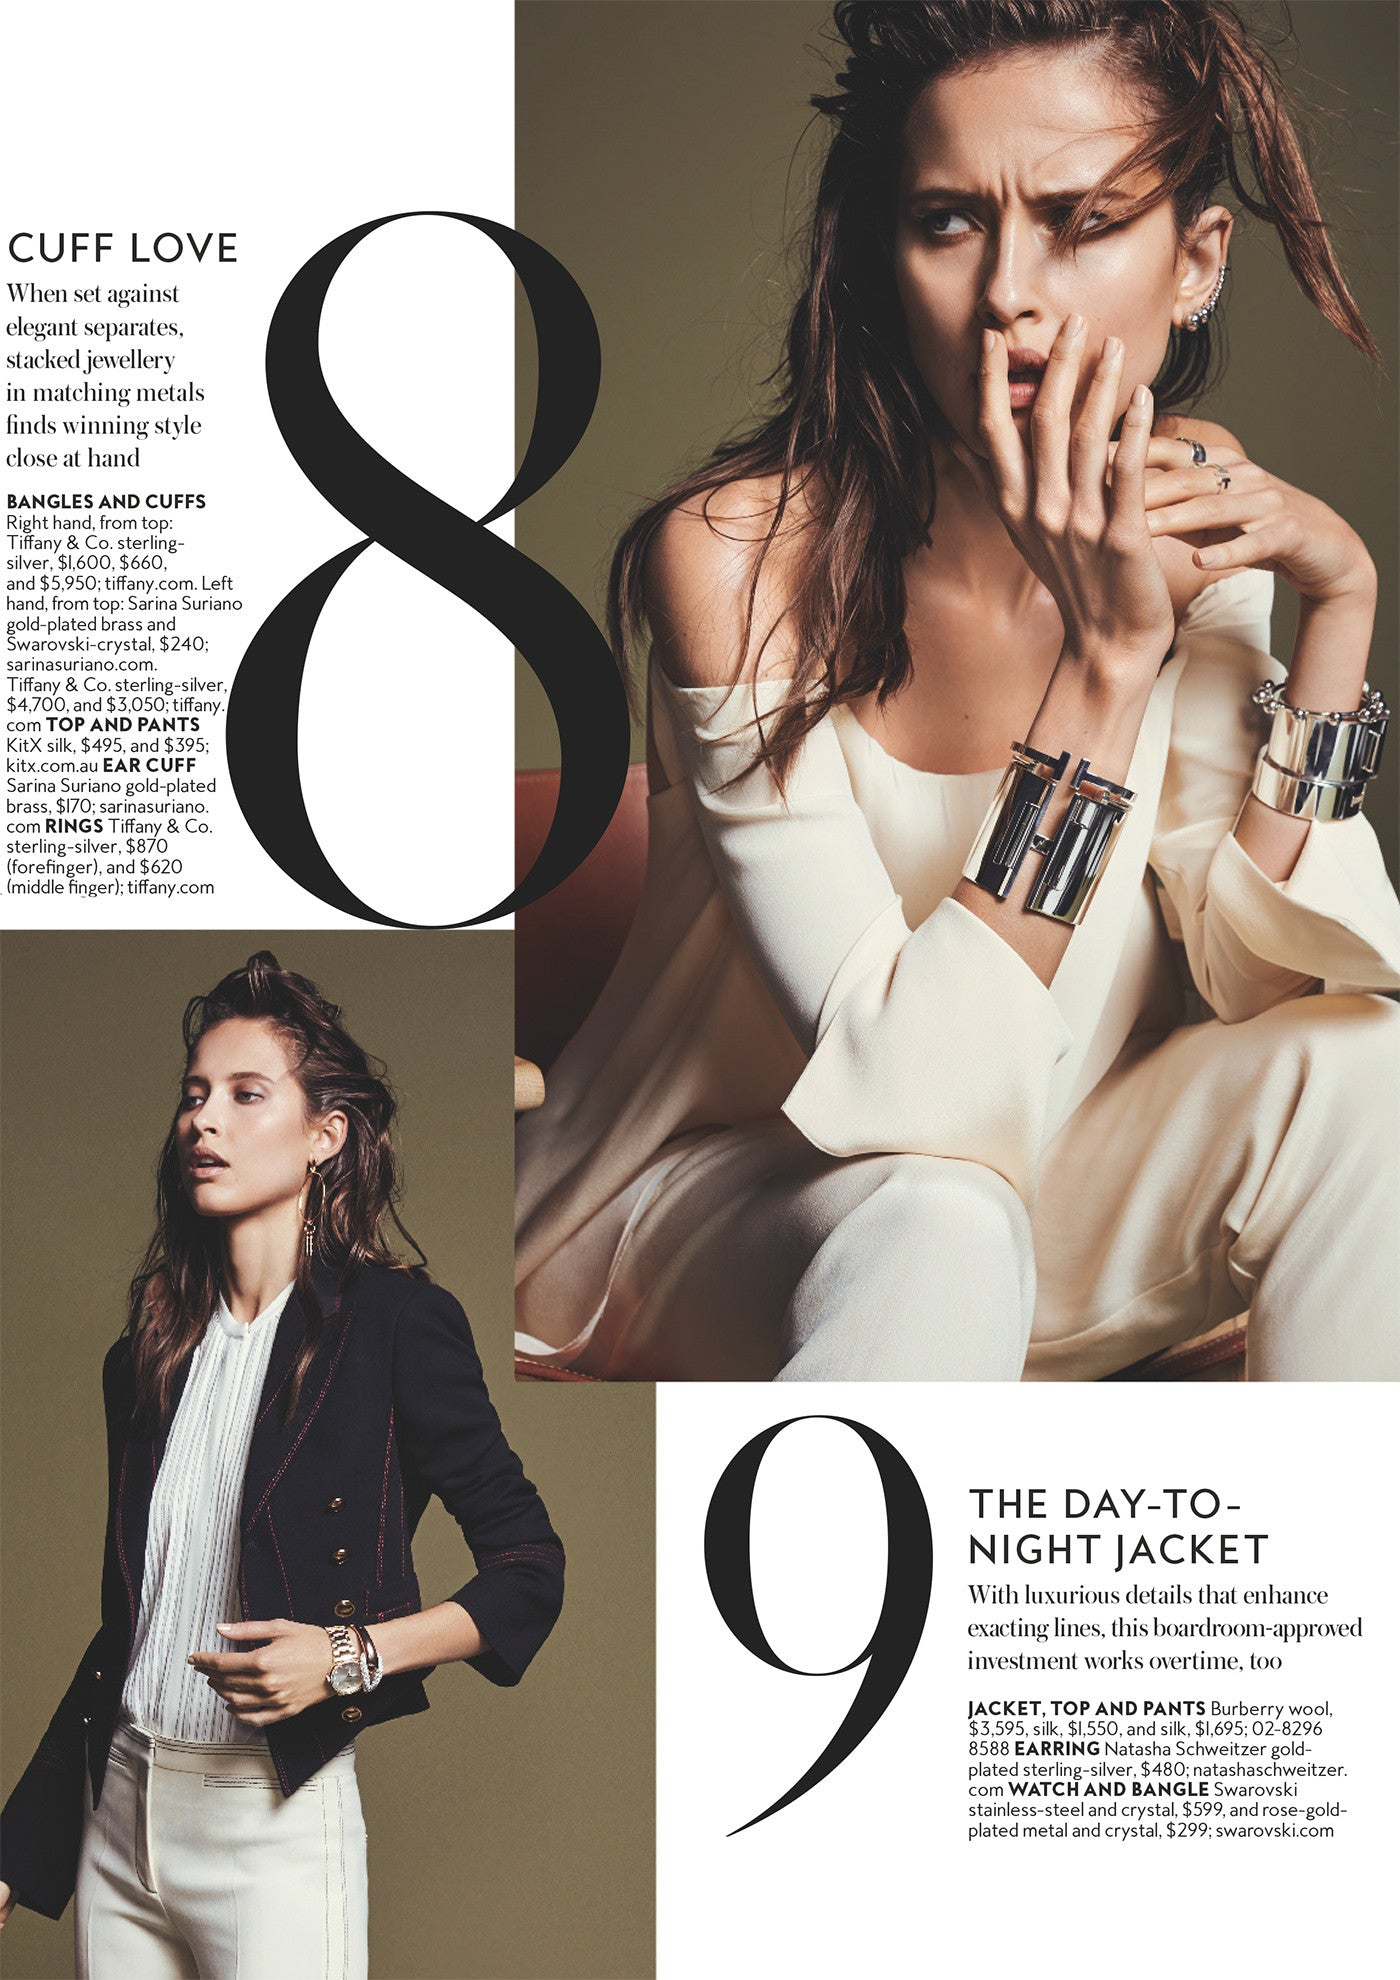 Instyle Magazine - Cuff Love fashion story wearing Sarina Suriano Luna Kingdom Ear cuffs and Luceat bangle from the Sphera collection